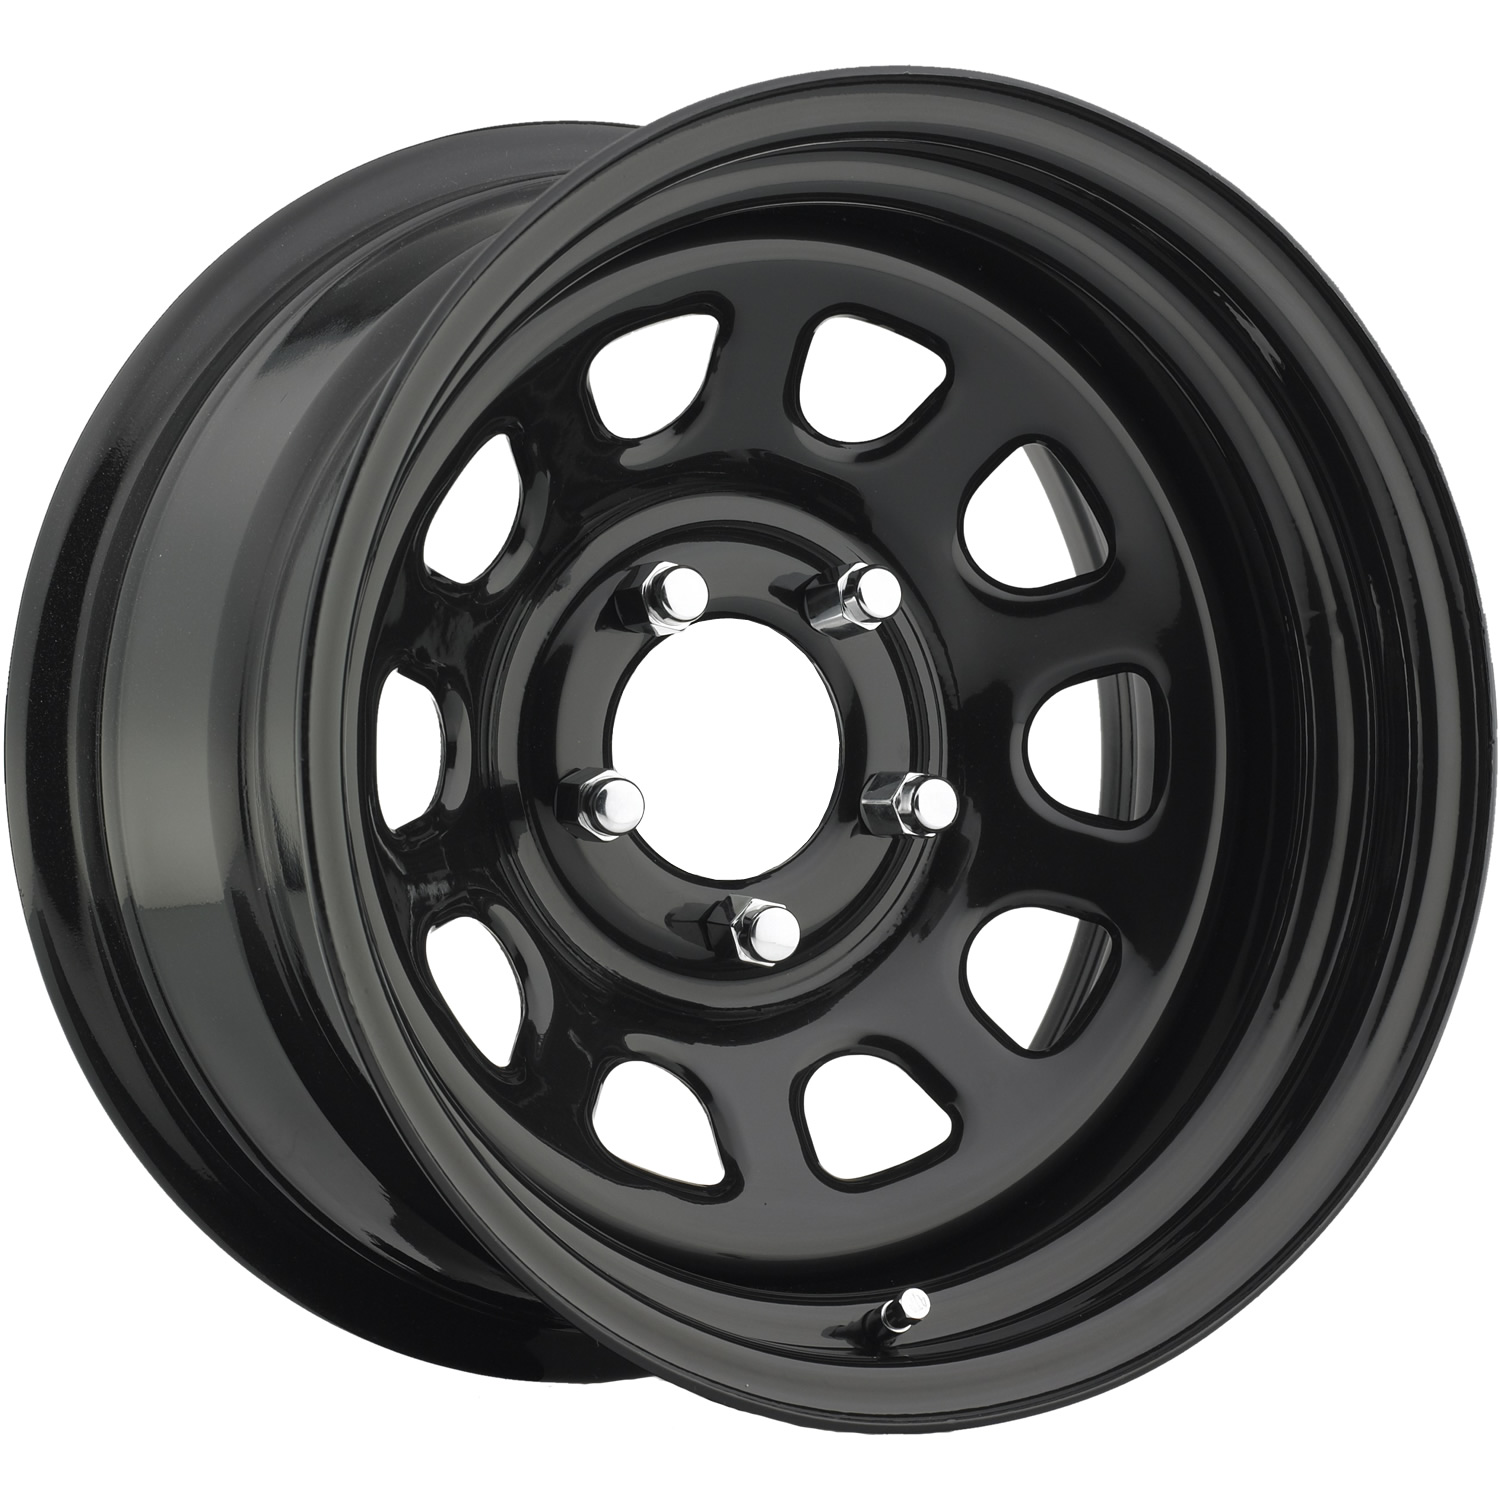 Pro Comp Series 51 15x10 44 Custom Wheels